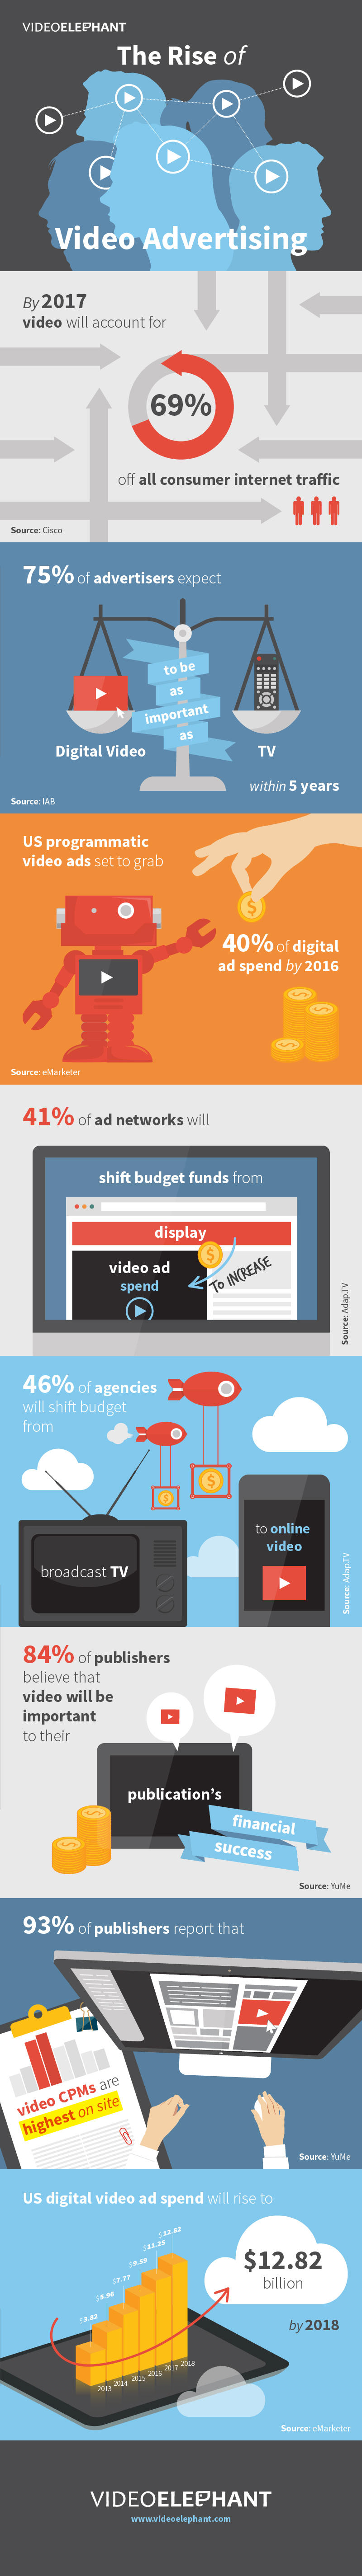 The-Rise-of-Video-Advertising